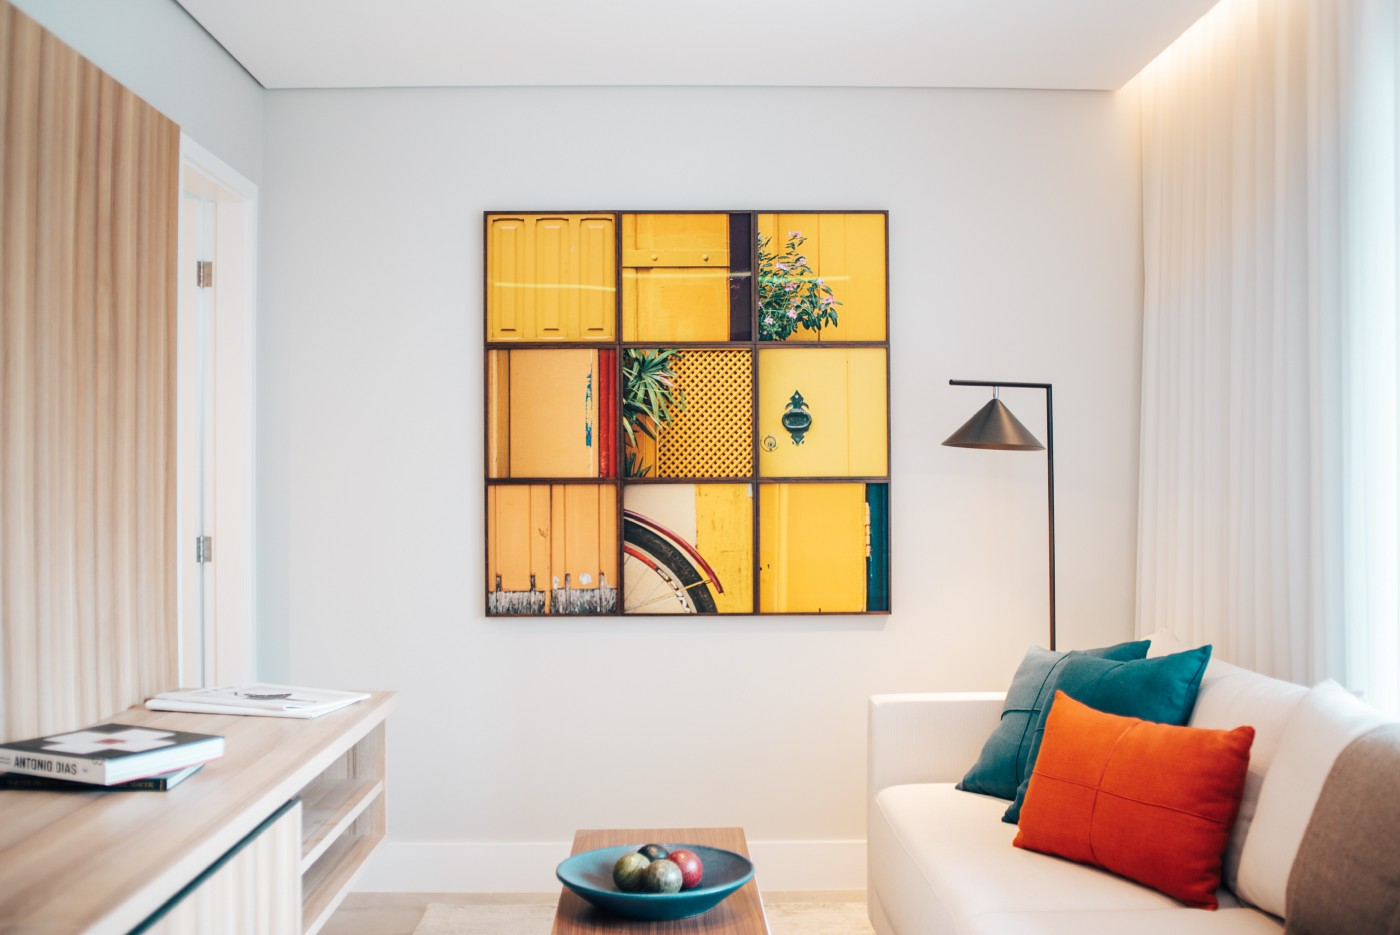 A tidy modern lounge with a colourful artwork on the wall